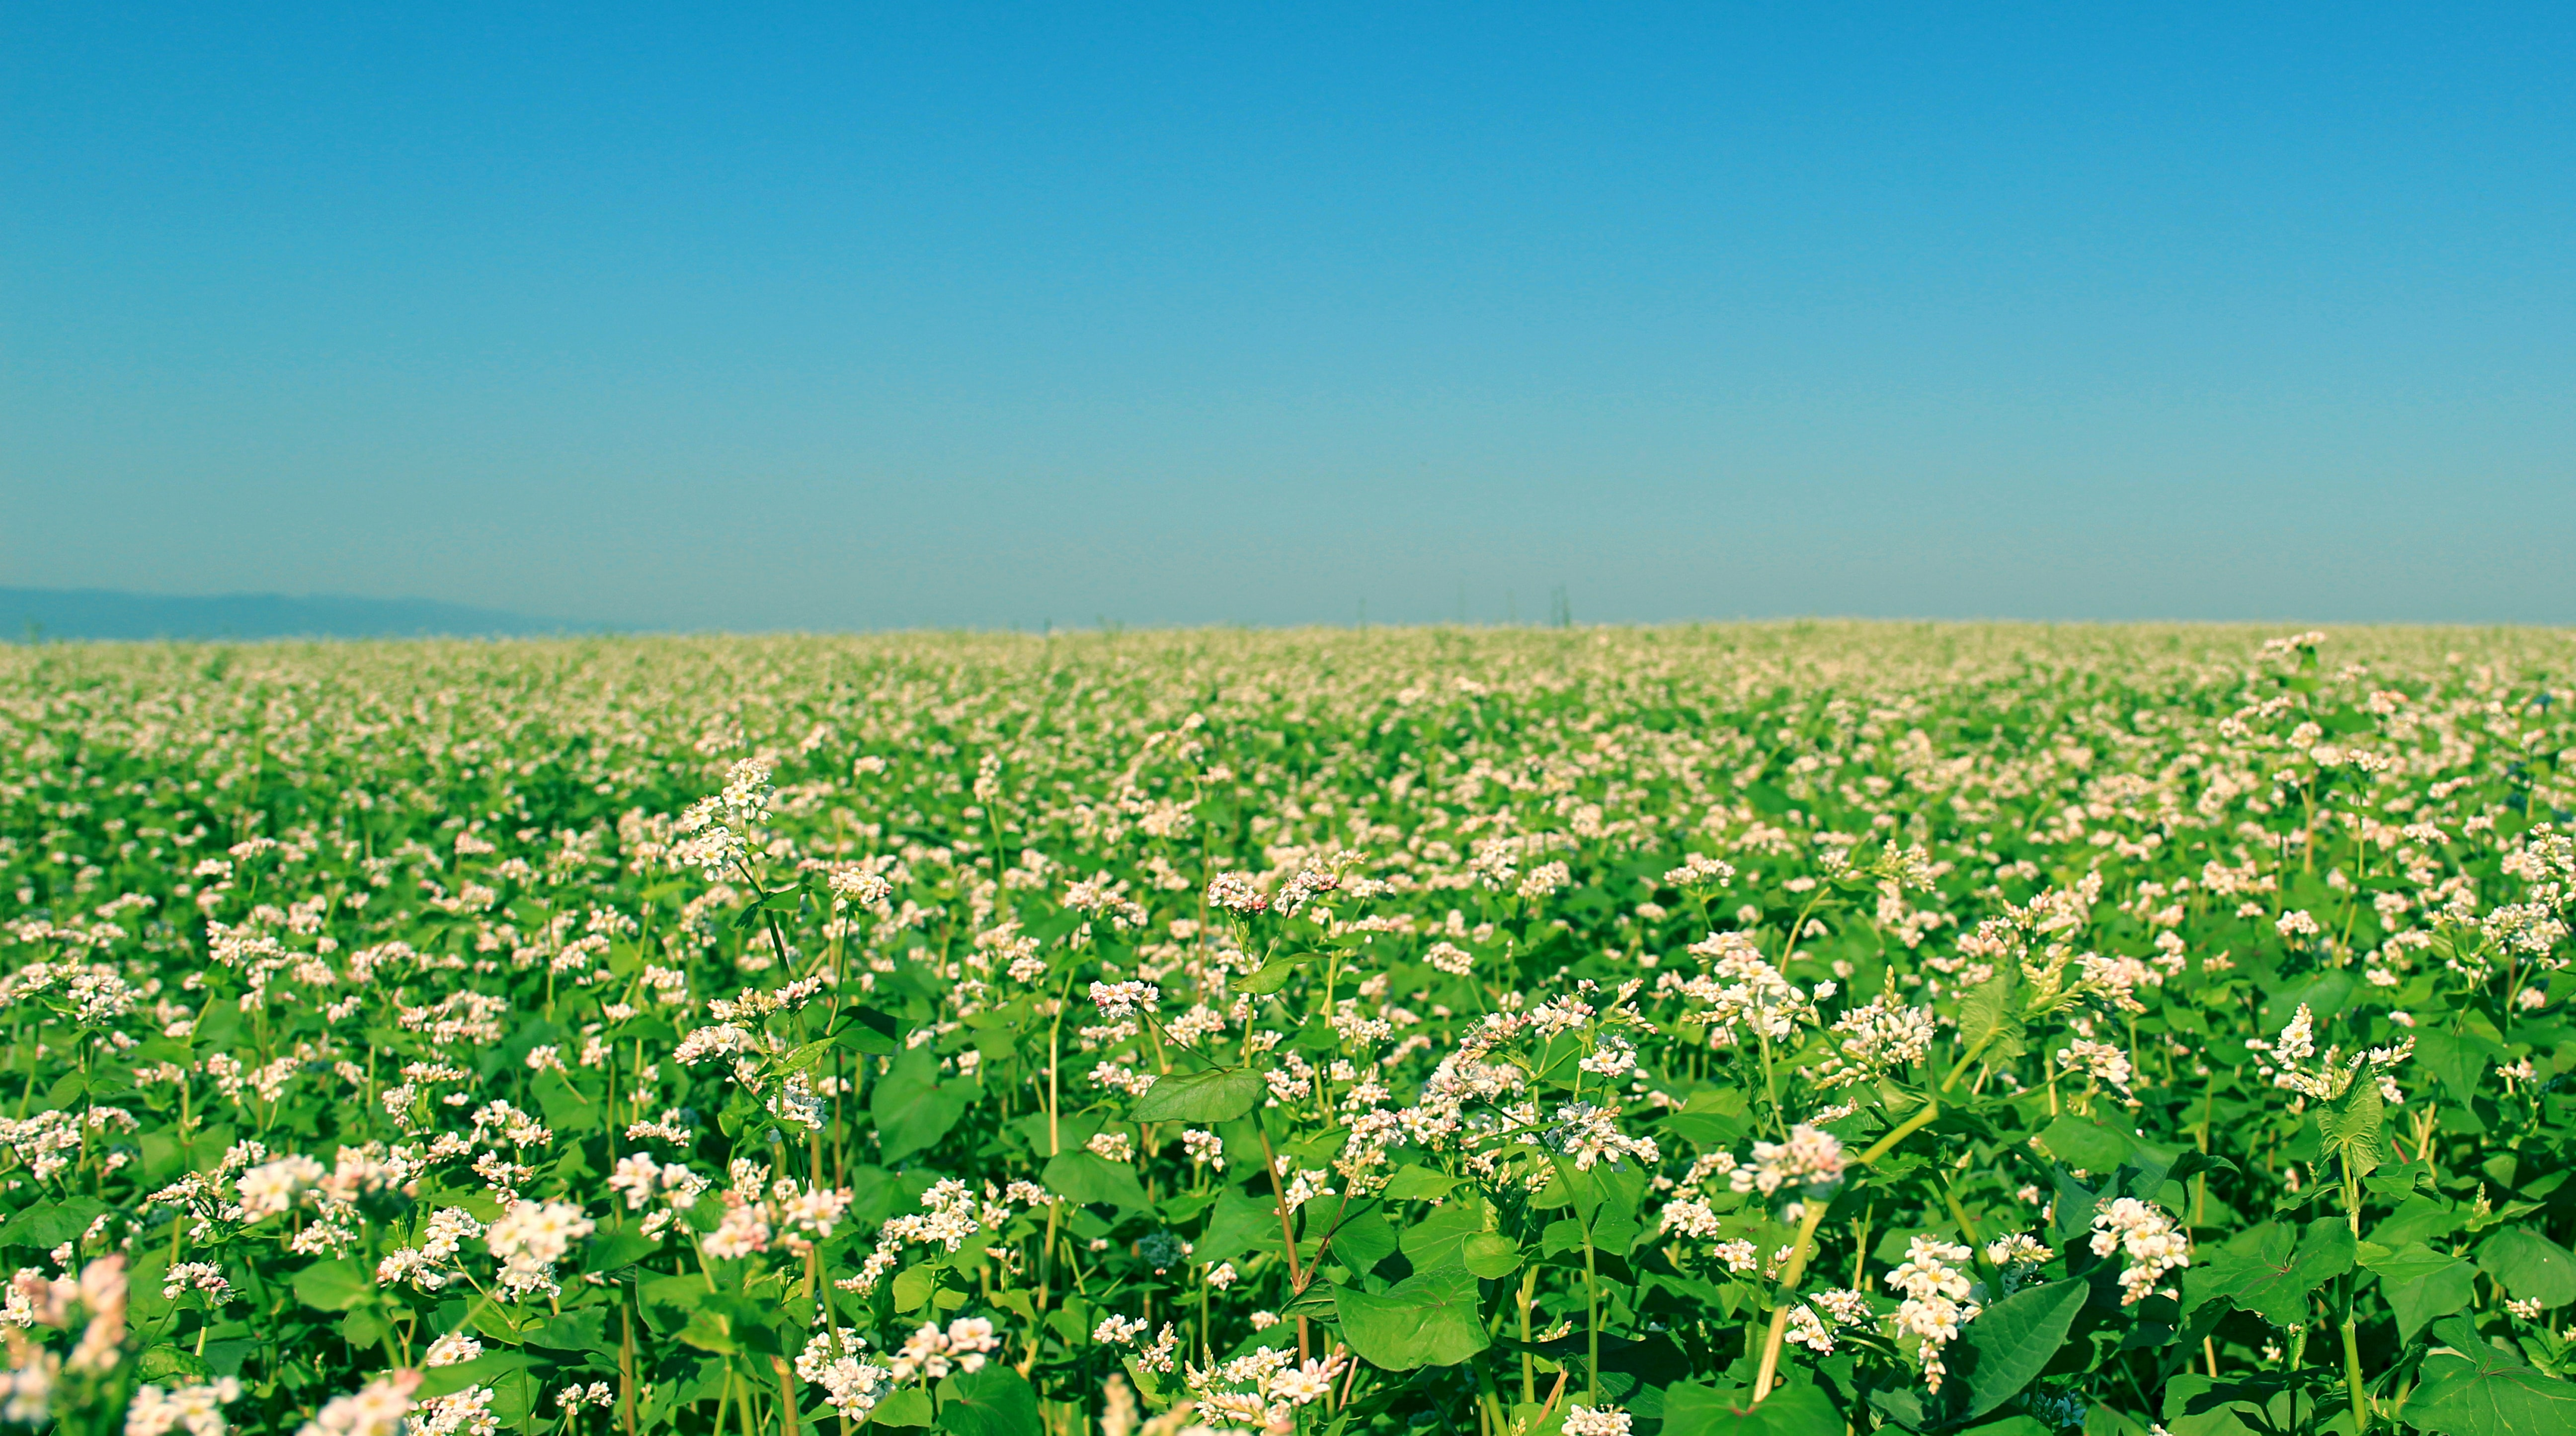 A field of white-flowered plants stretching to the horizon on a spring day